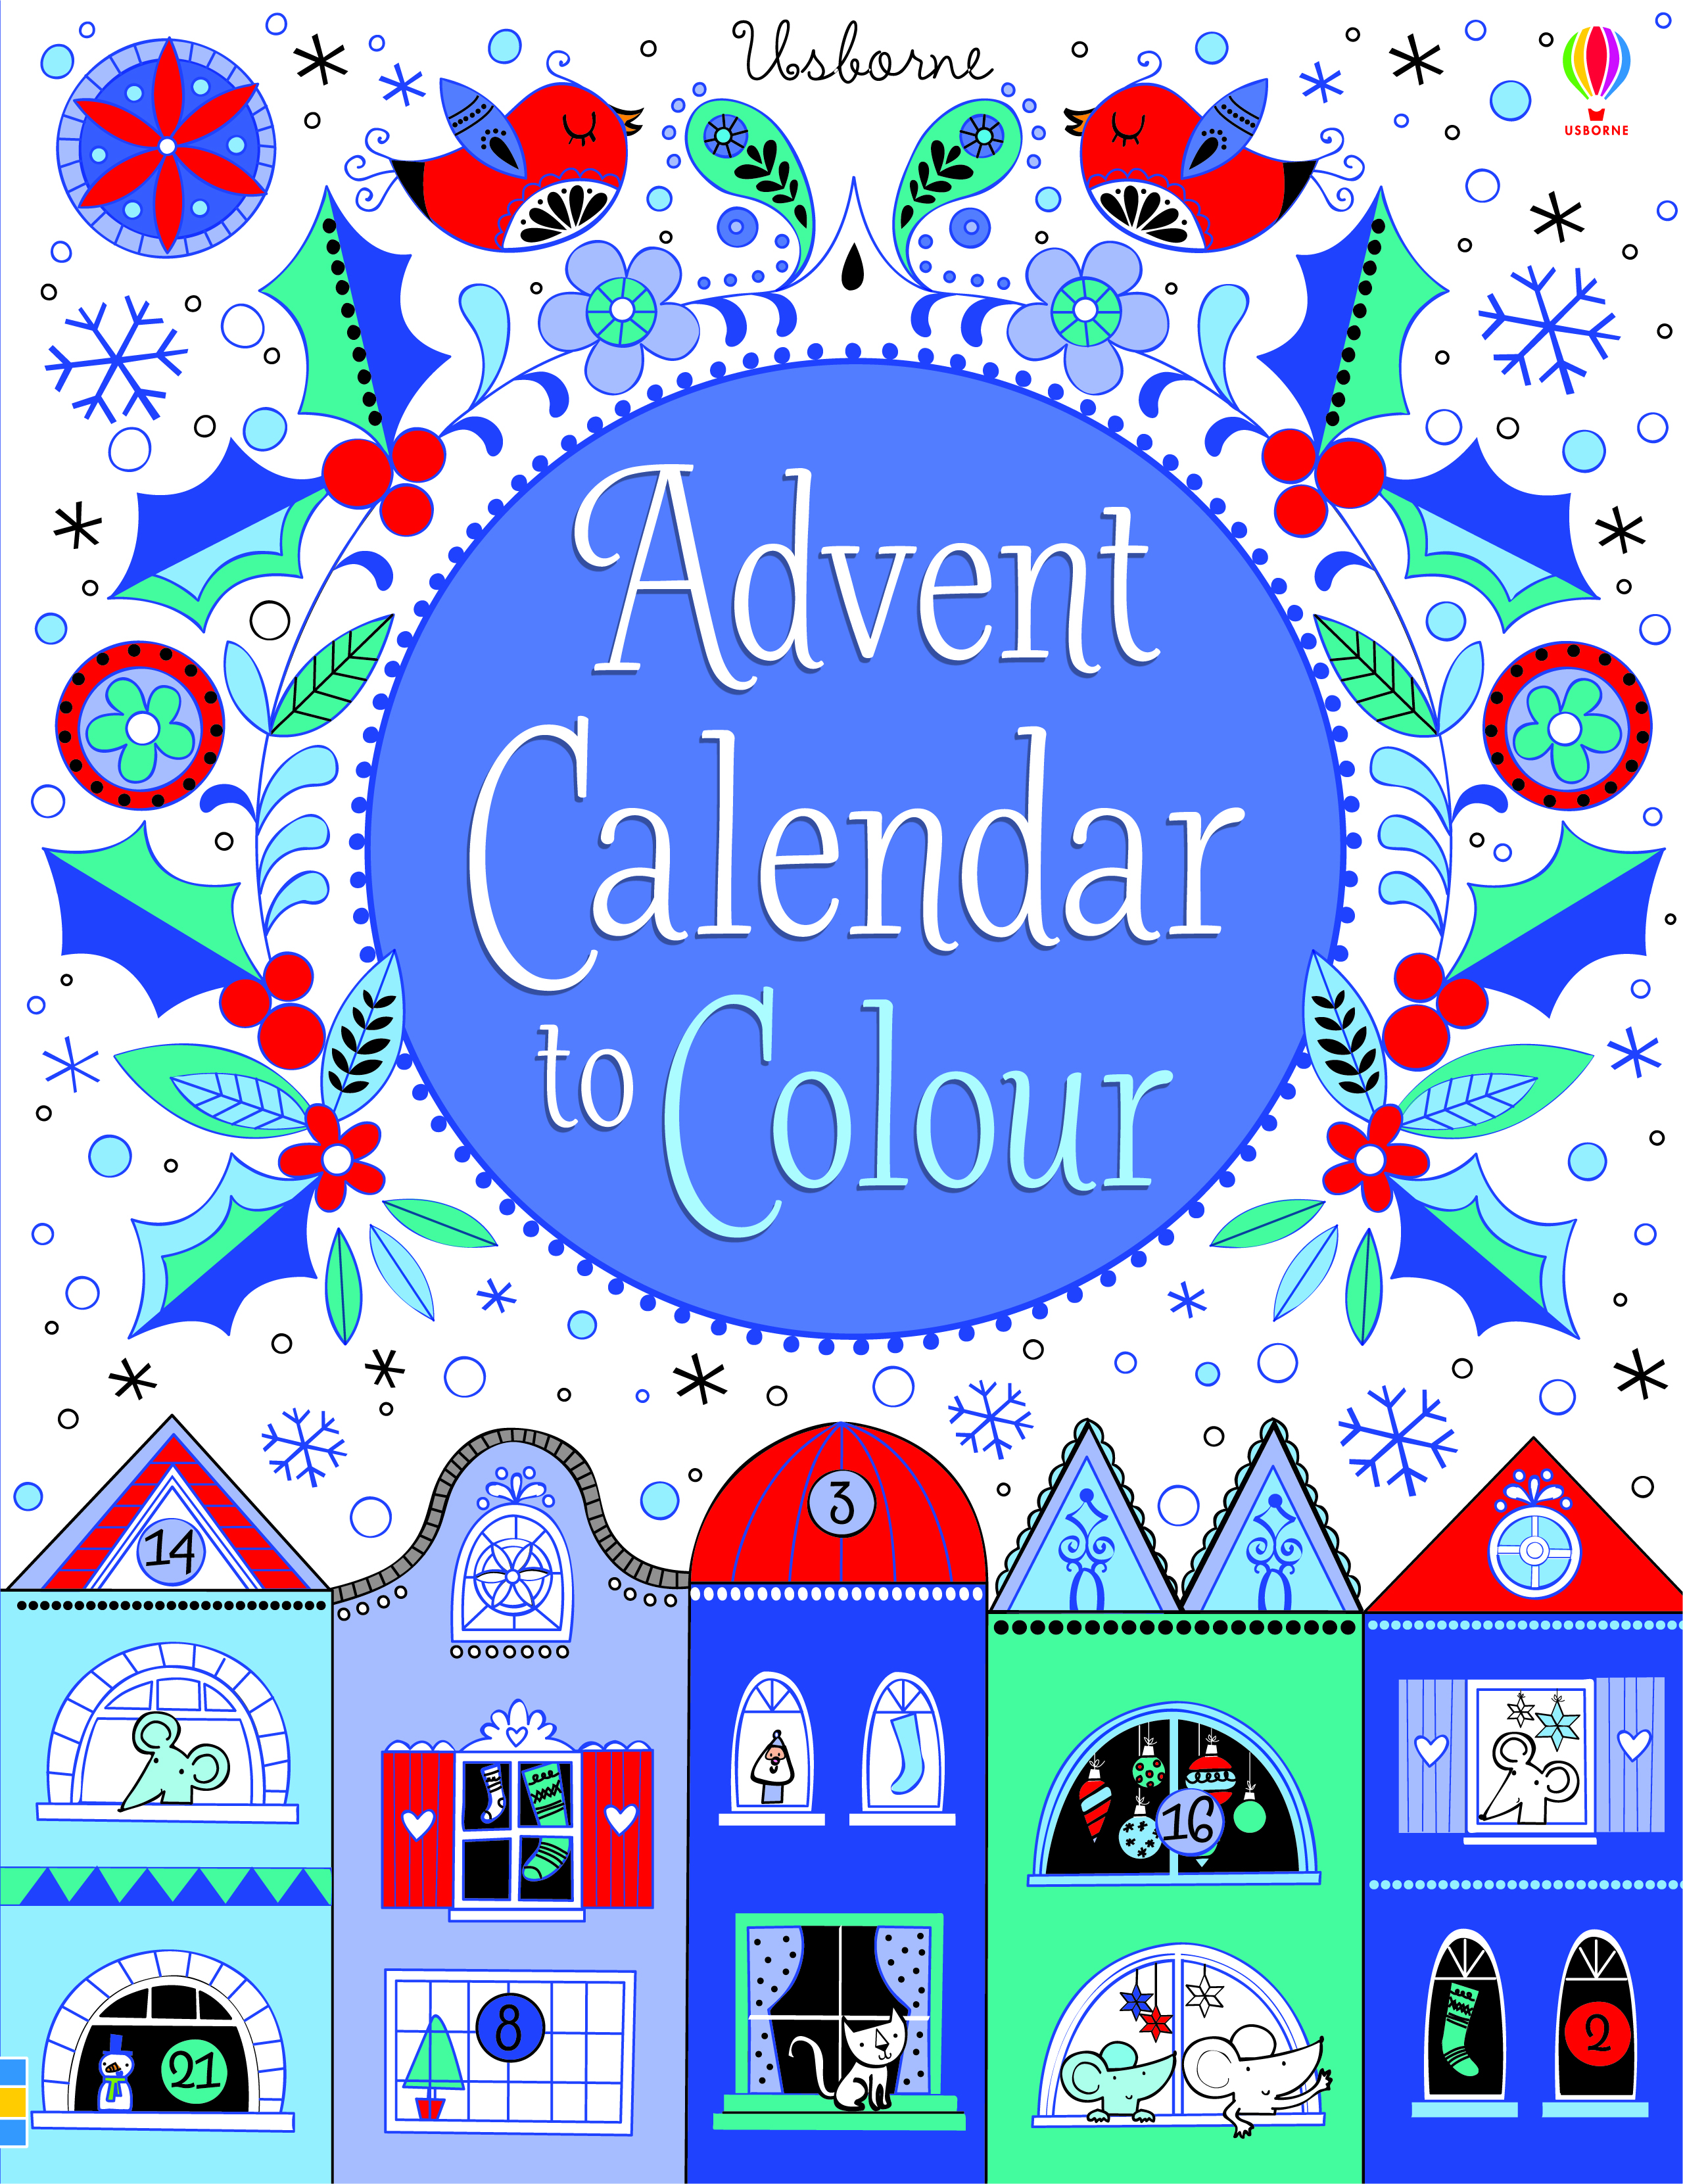 9781474906340?width\u003d960\u0026mode\u003dmin together with the usborne book of drawing doodling and coloring for christmas on usborne christmas coloring book additionally usborne books more christmas pocket doodling and coloring book on usborne christmas coloring book furthermore christmas colouring books from usborne on usborne christmas coloring book along with 15 adult coloring book on usborne christmas coloring book